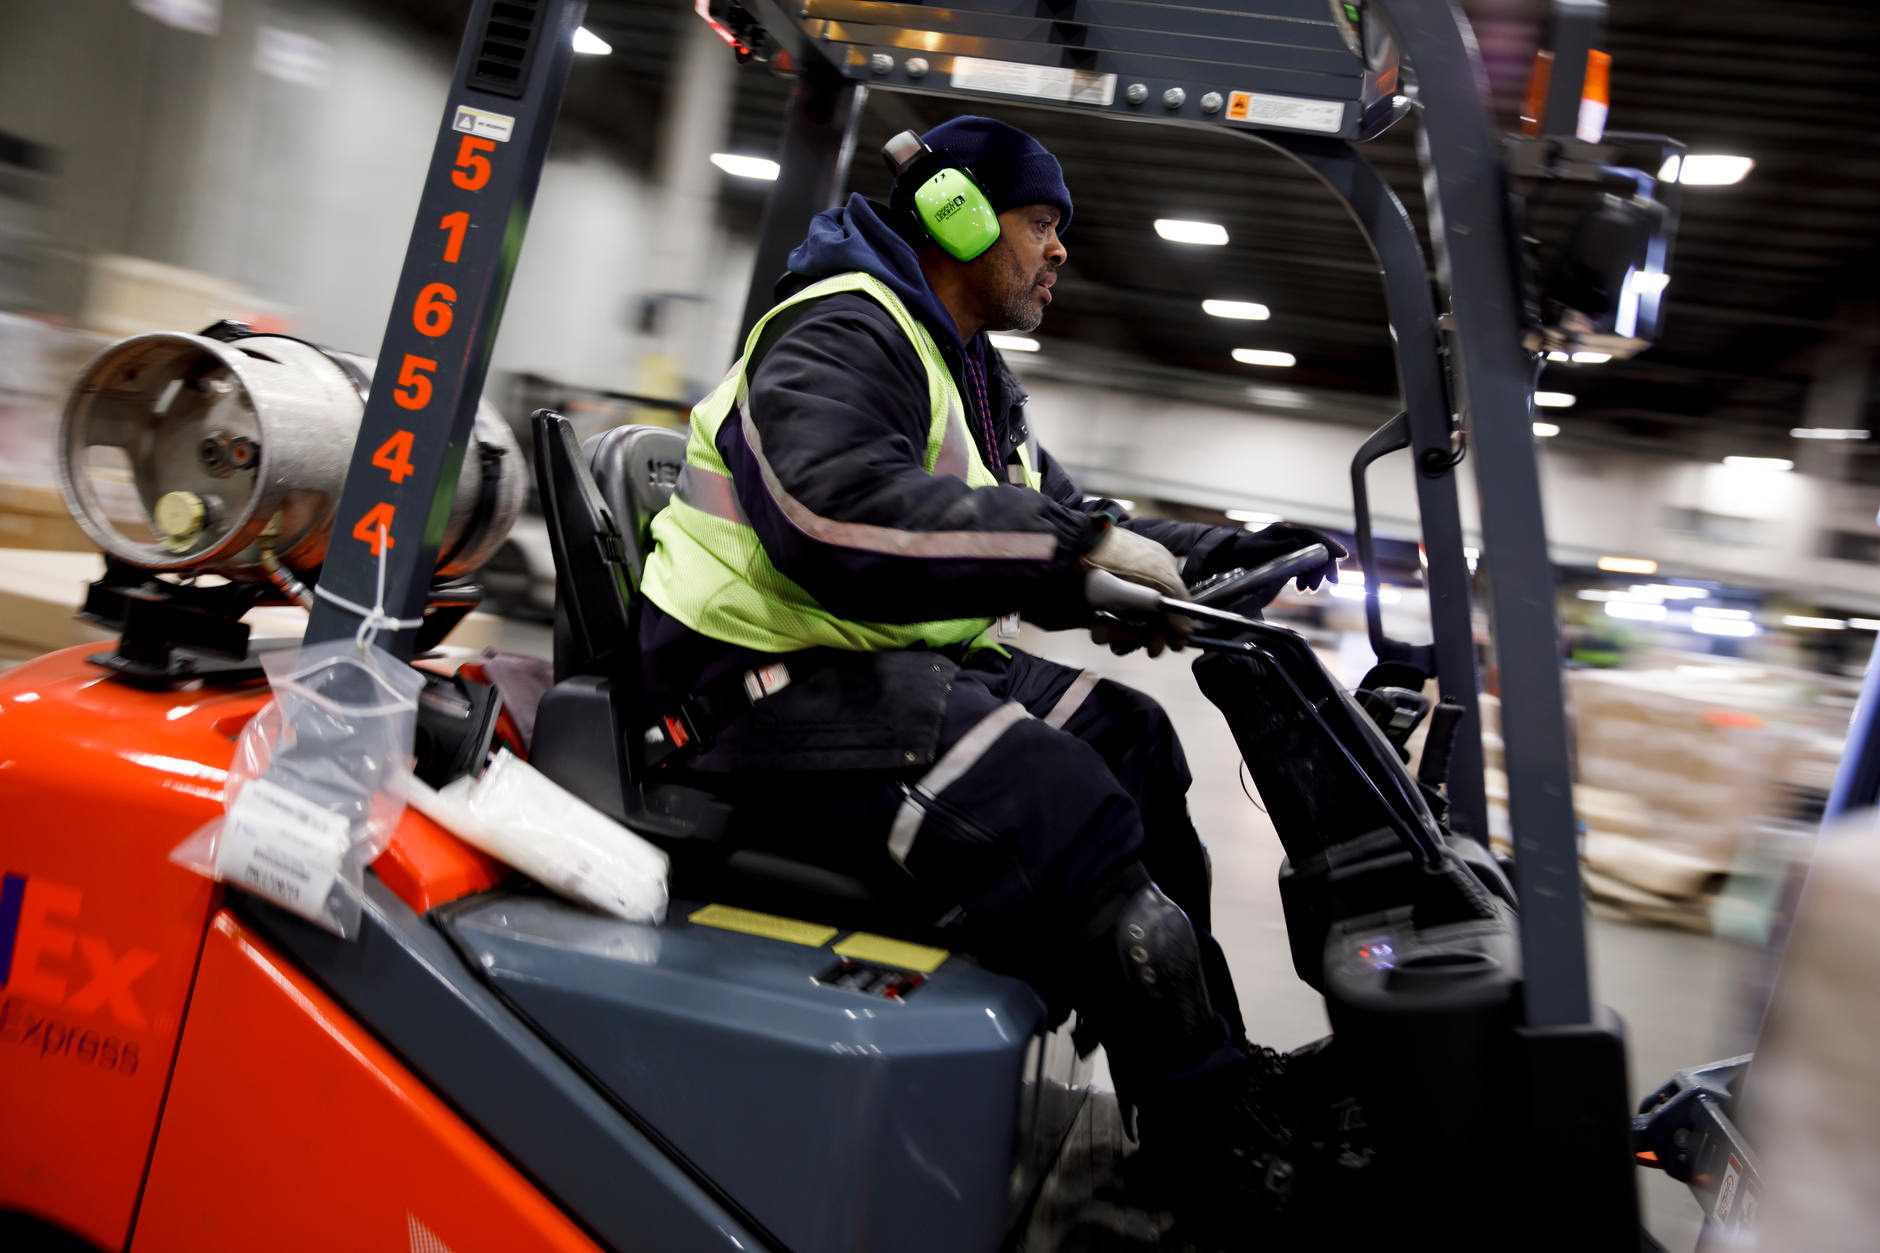 James Wilson, a FedEx material handler, uses a forklift to load a pallet of packages for shipment at the FedEx Express Hub in Indianapolis in the early morning hours of Wednesday, Feb. 27, 2019. The jobless rate in the United States is near the lowest level since the 1960s, but gains are not being distributed evenly. (James Brosher for The Wall Street Journal)